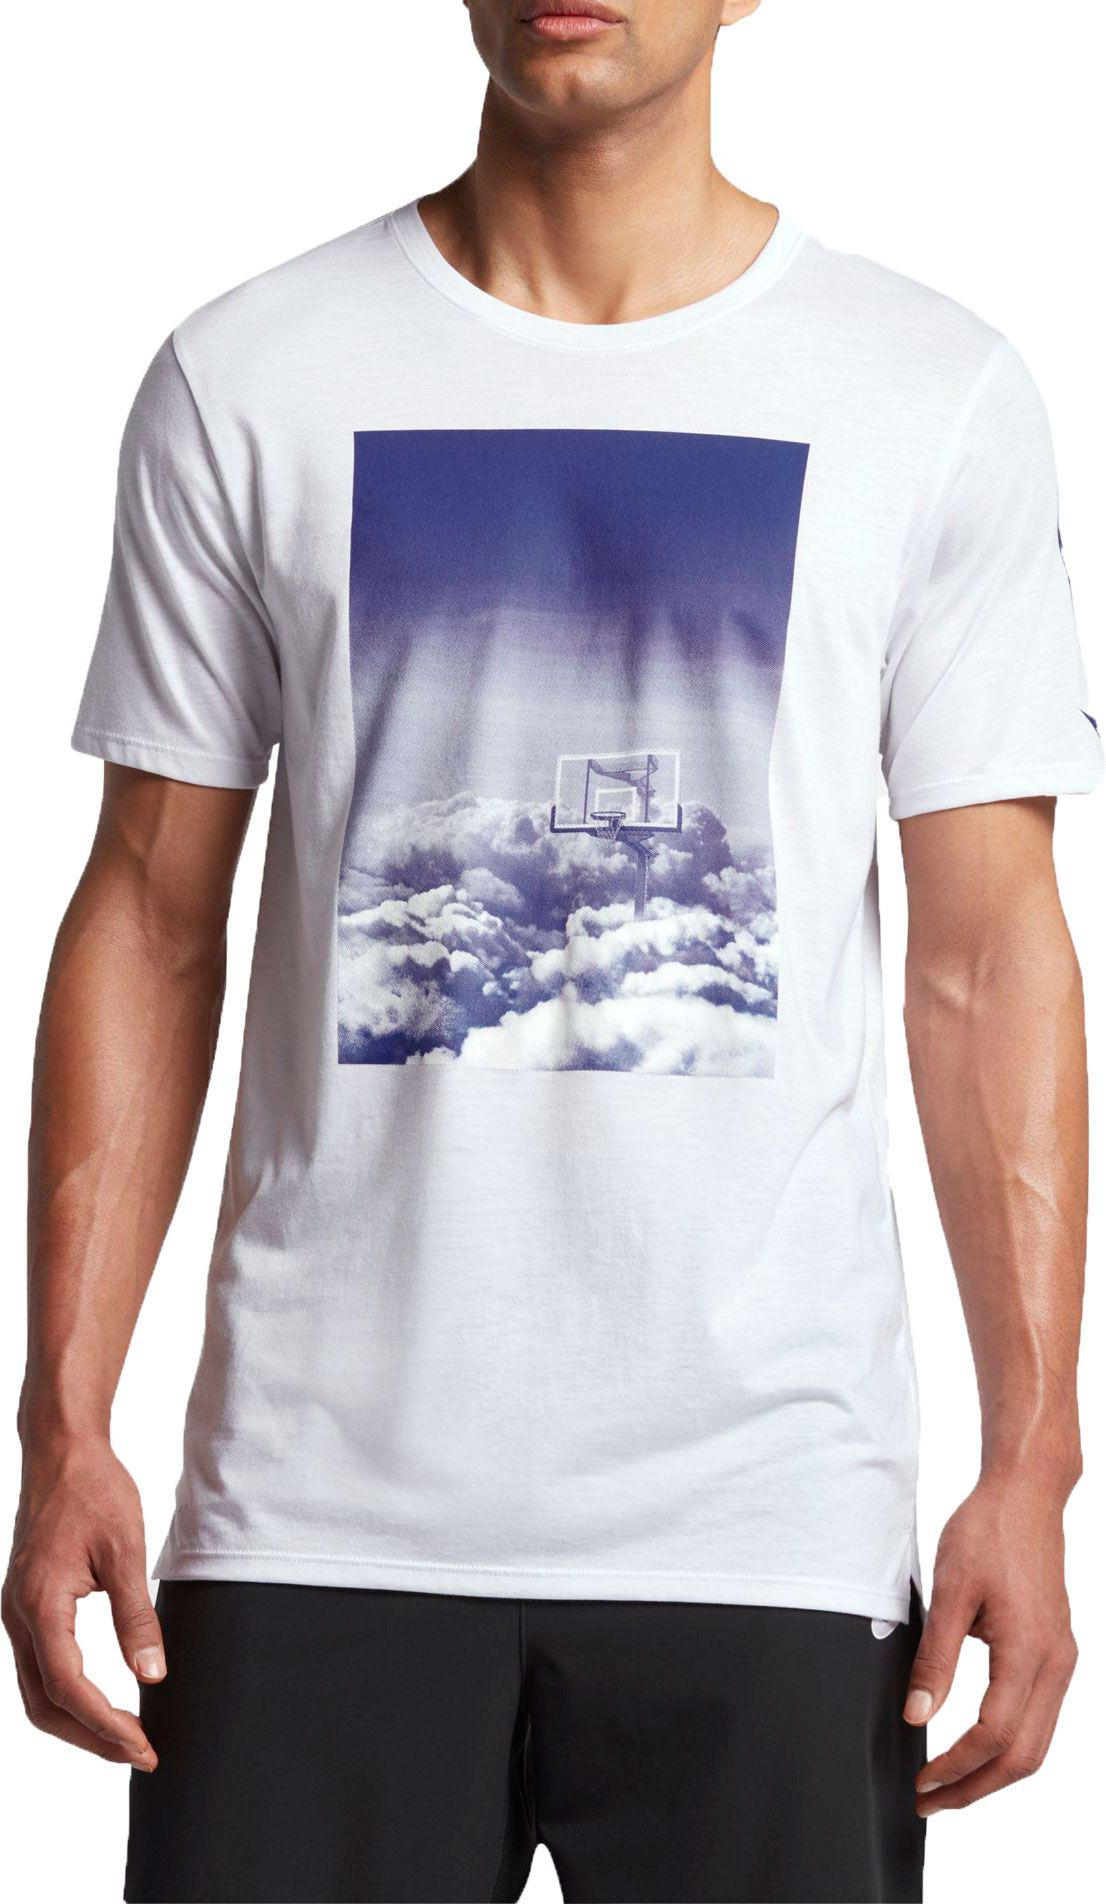 2f44f5e4 Nike Dry Hoop Heaven Graphic Basketball T-shirt in White for Men - Lyst